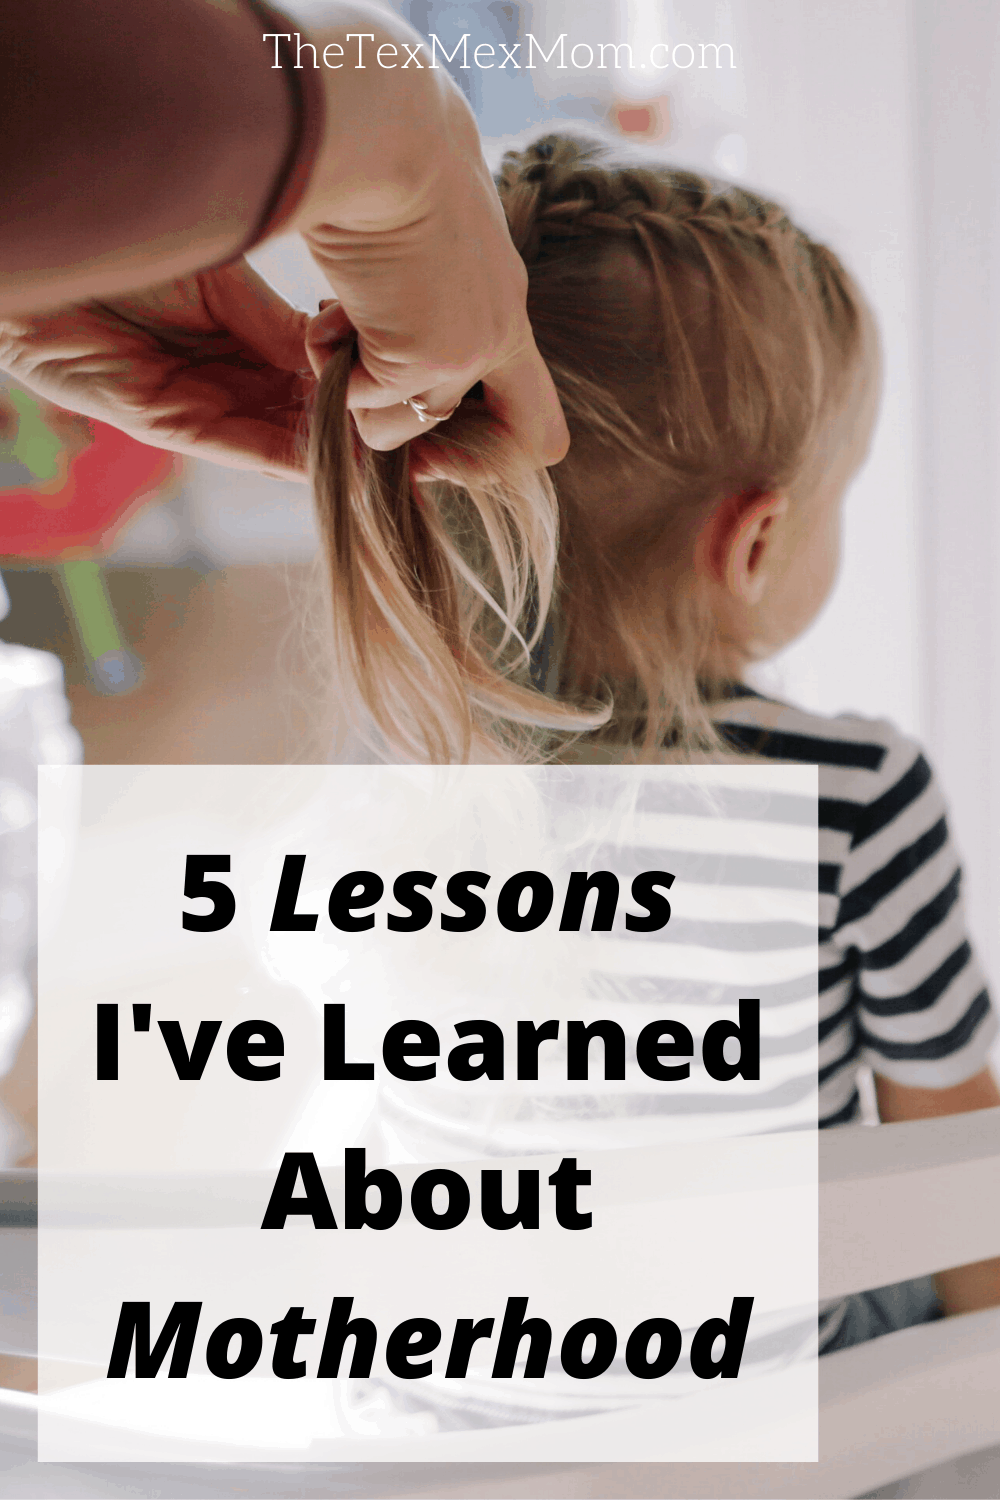 Lessons About Motherhood Learned From an Embarrassing Moment (with image of child's hair being braided)